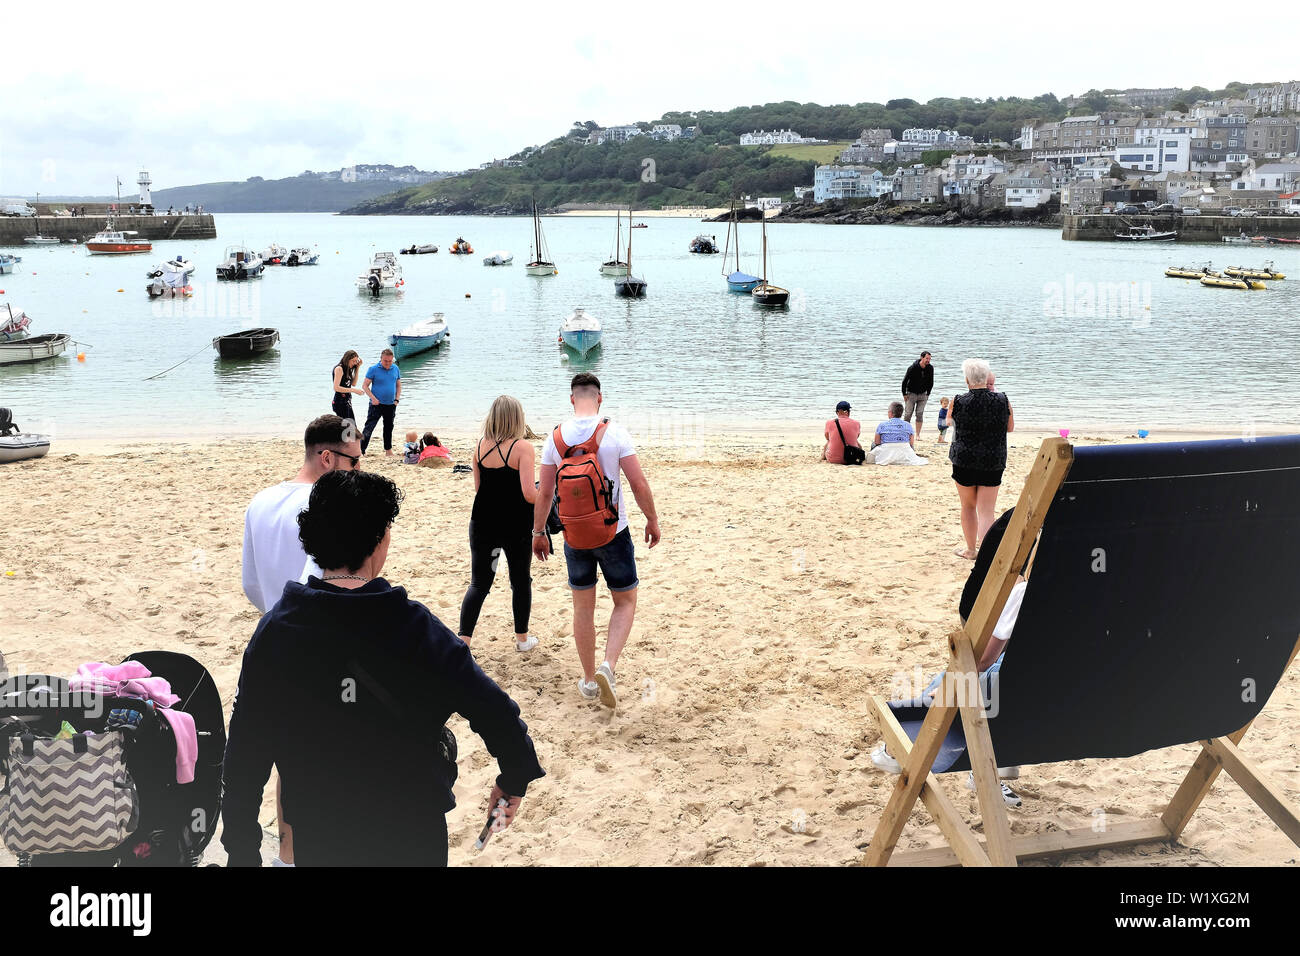 St. Ives, Cornwall, UK. June 24, 2019. Holidaymakers enjoying the sands overlooking the Harbor with high tide at St. Ives in Cornwall, UK. Stock Photo